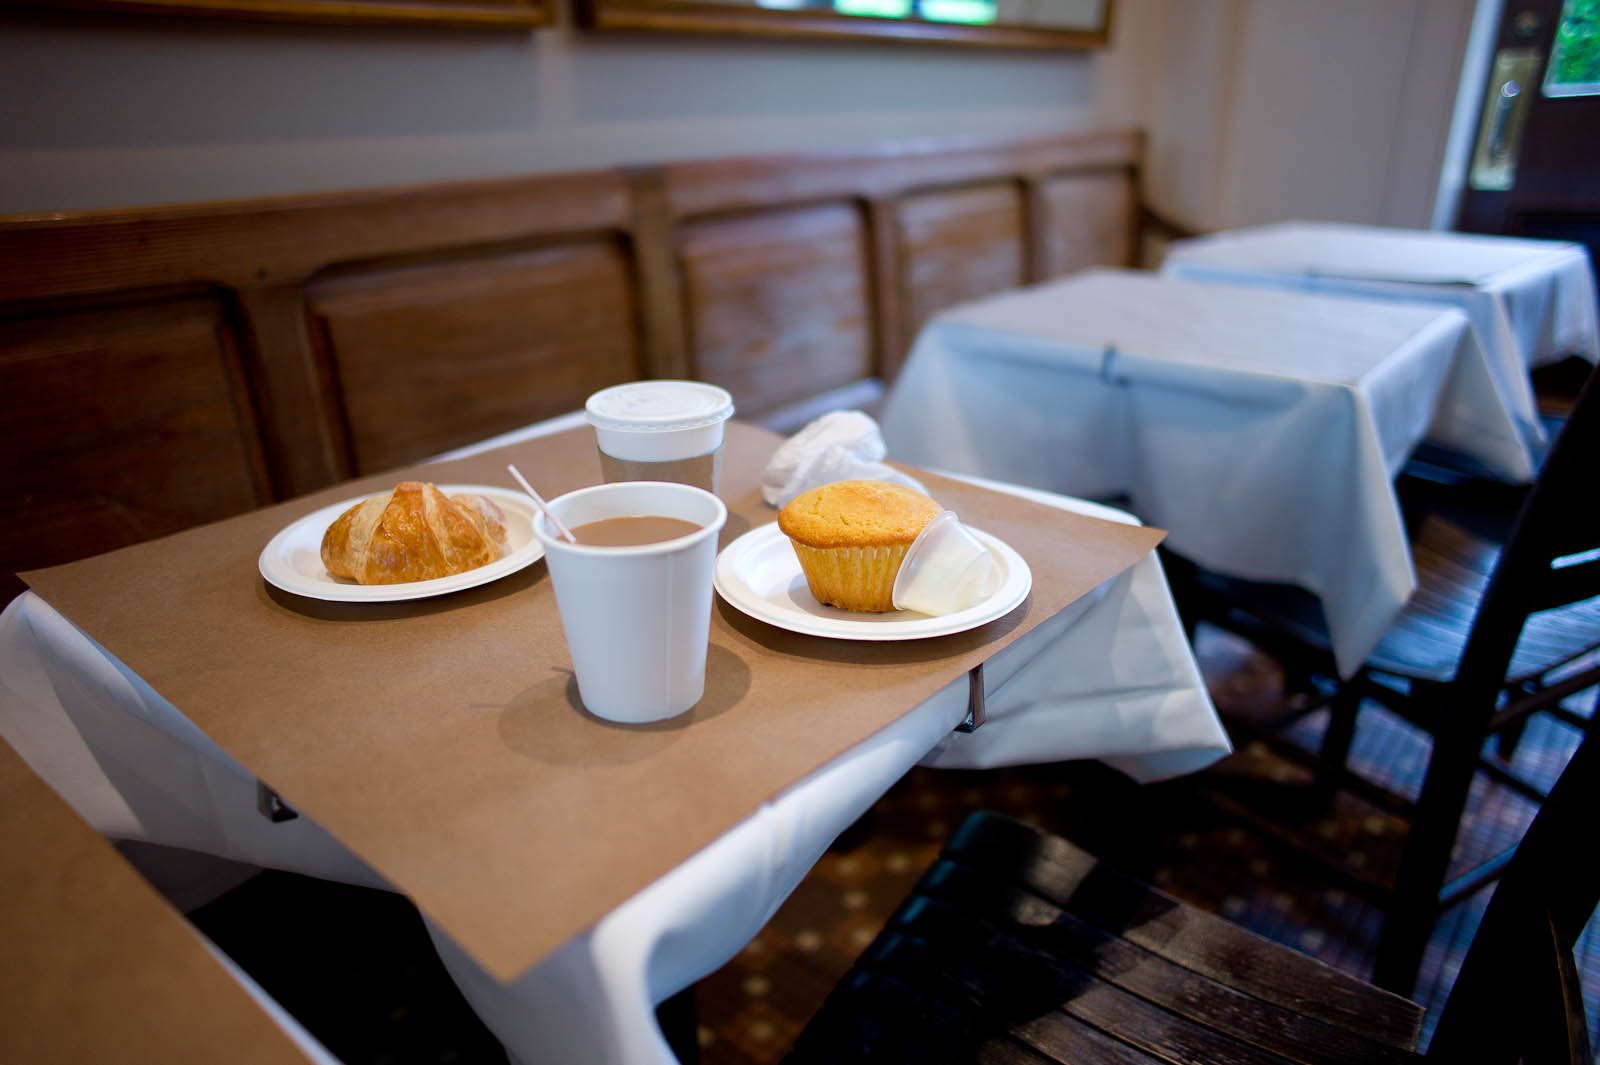 Croissant, Corn Muffin, and Coffee